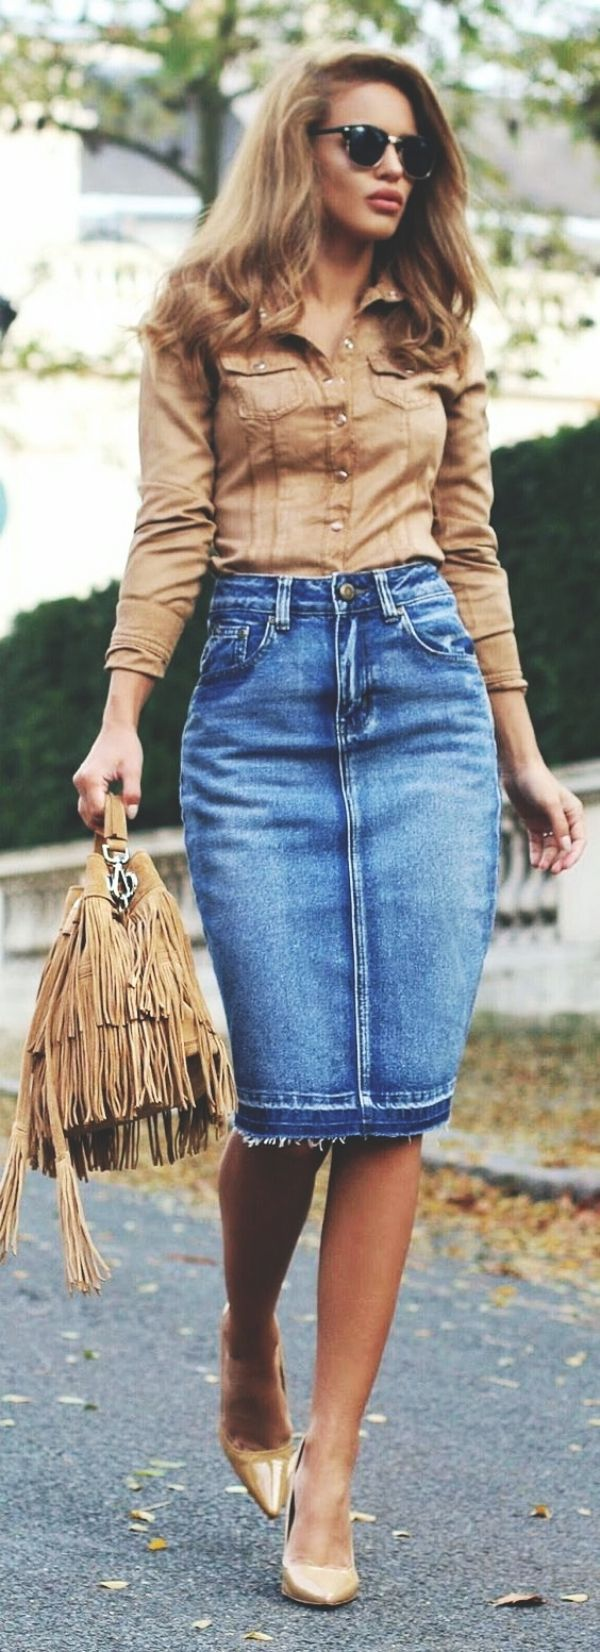 65 Catchy Spring Work Outfits Ideas For 2018 | Fashion ...